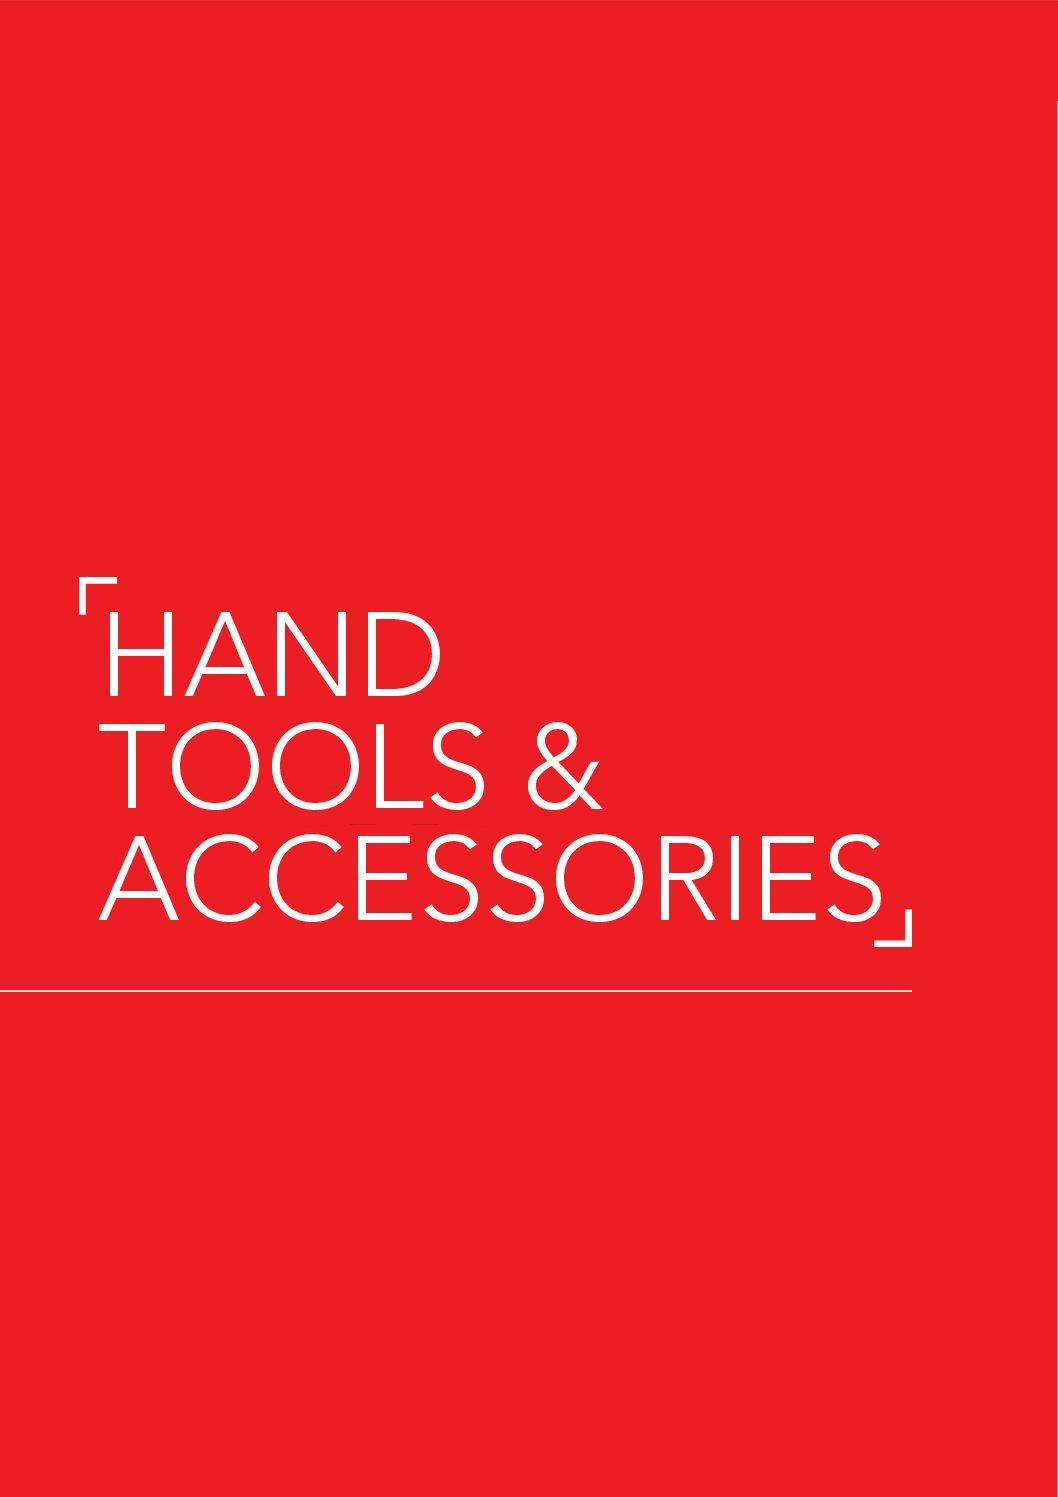 Hand Tools & Accessories